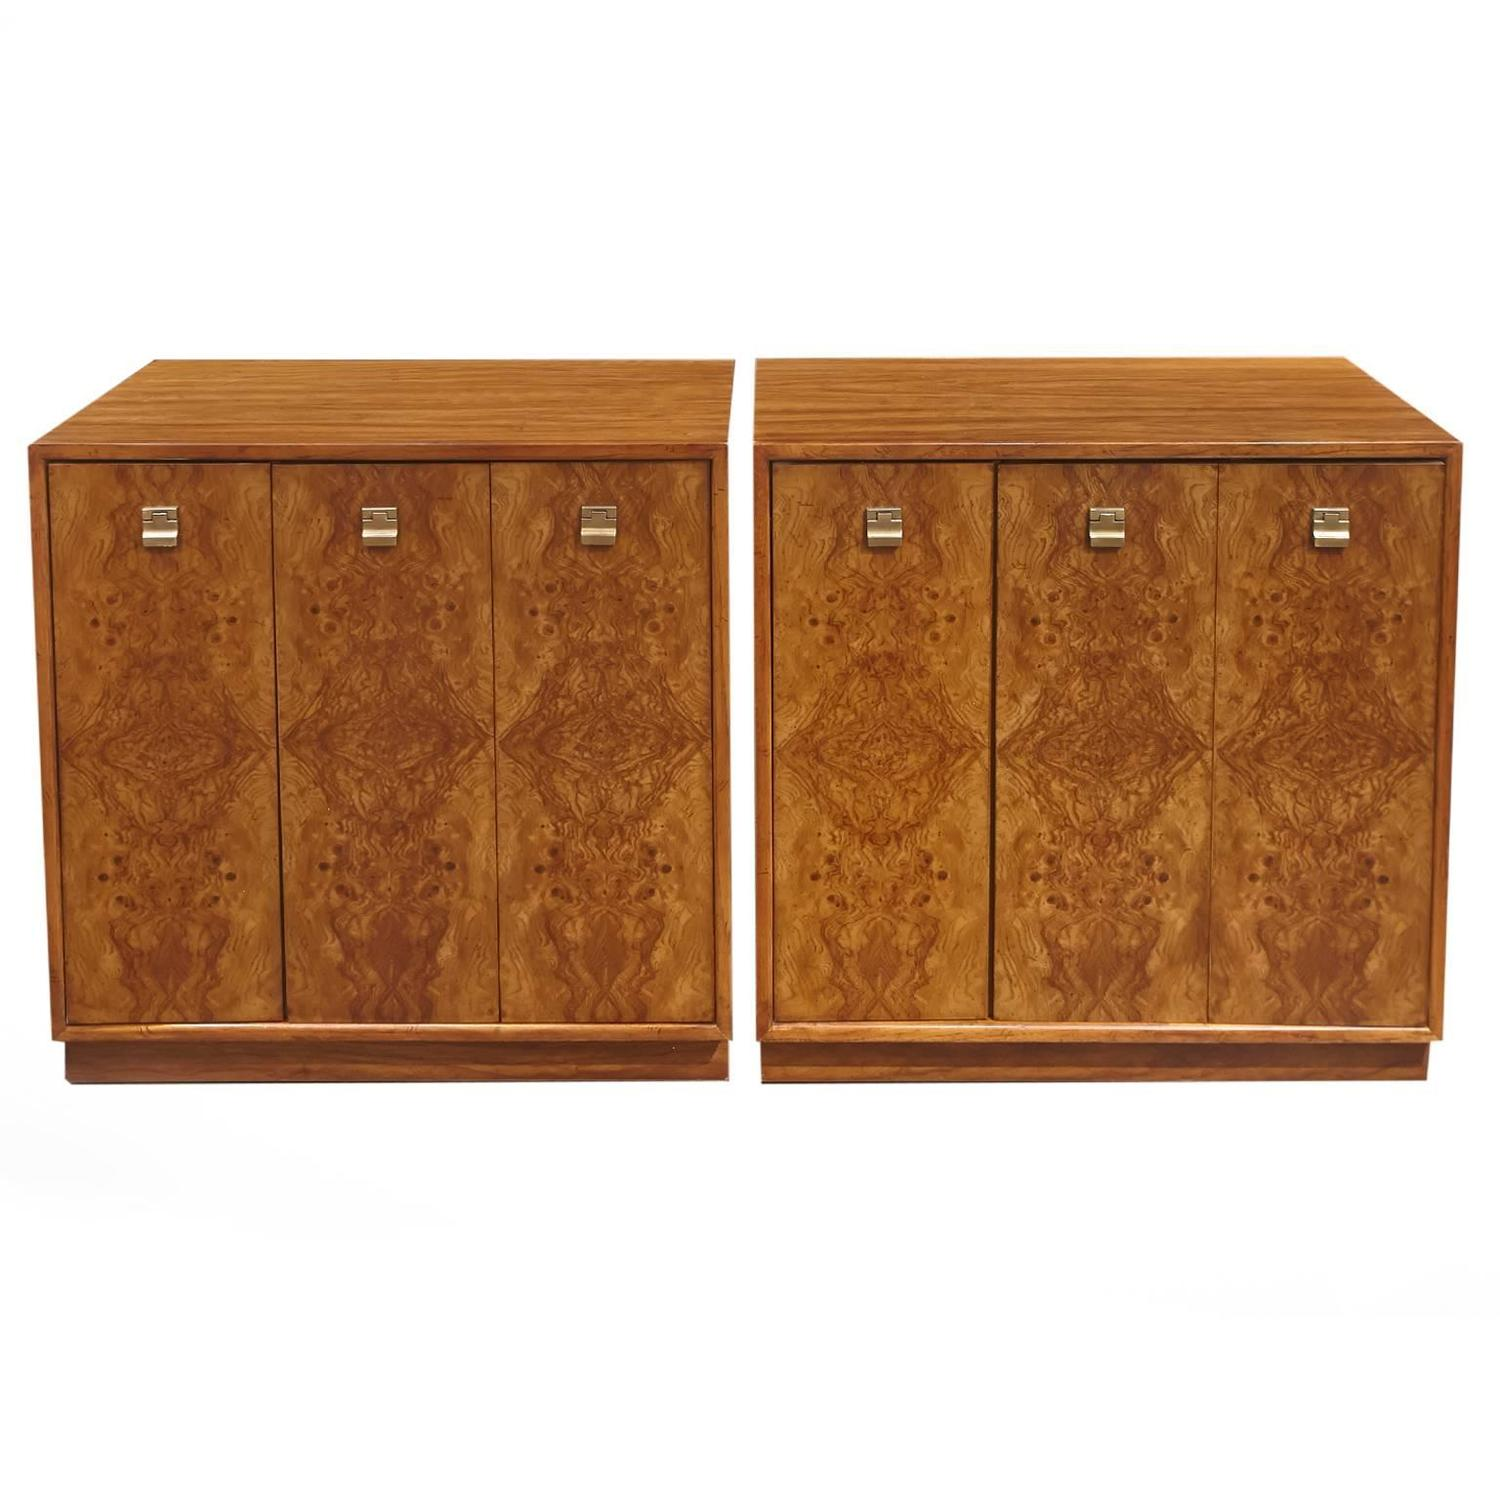 Pair of Edward Wormley Burl Wood Cabinets for Drexel Precedent - Drexel Heritage Furniture - 30 For Sale At 1stdibs